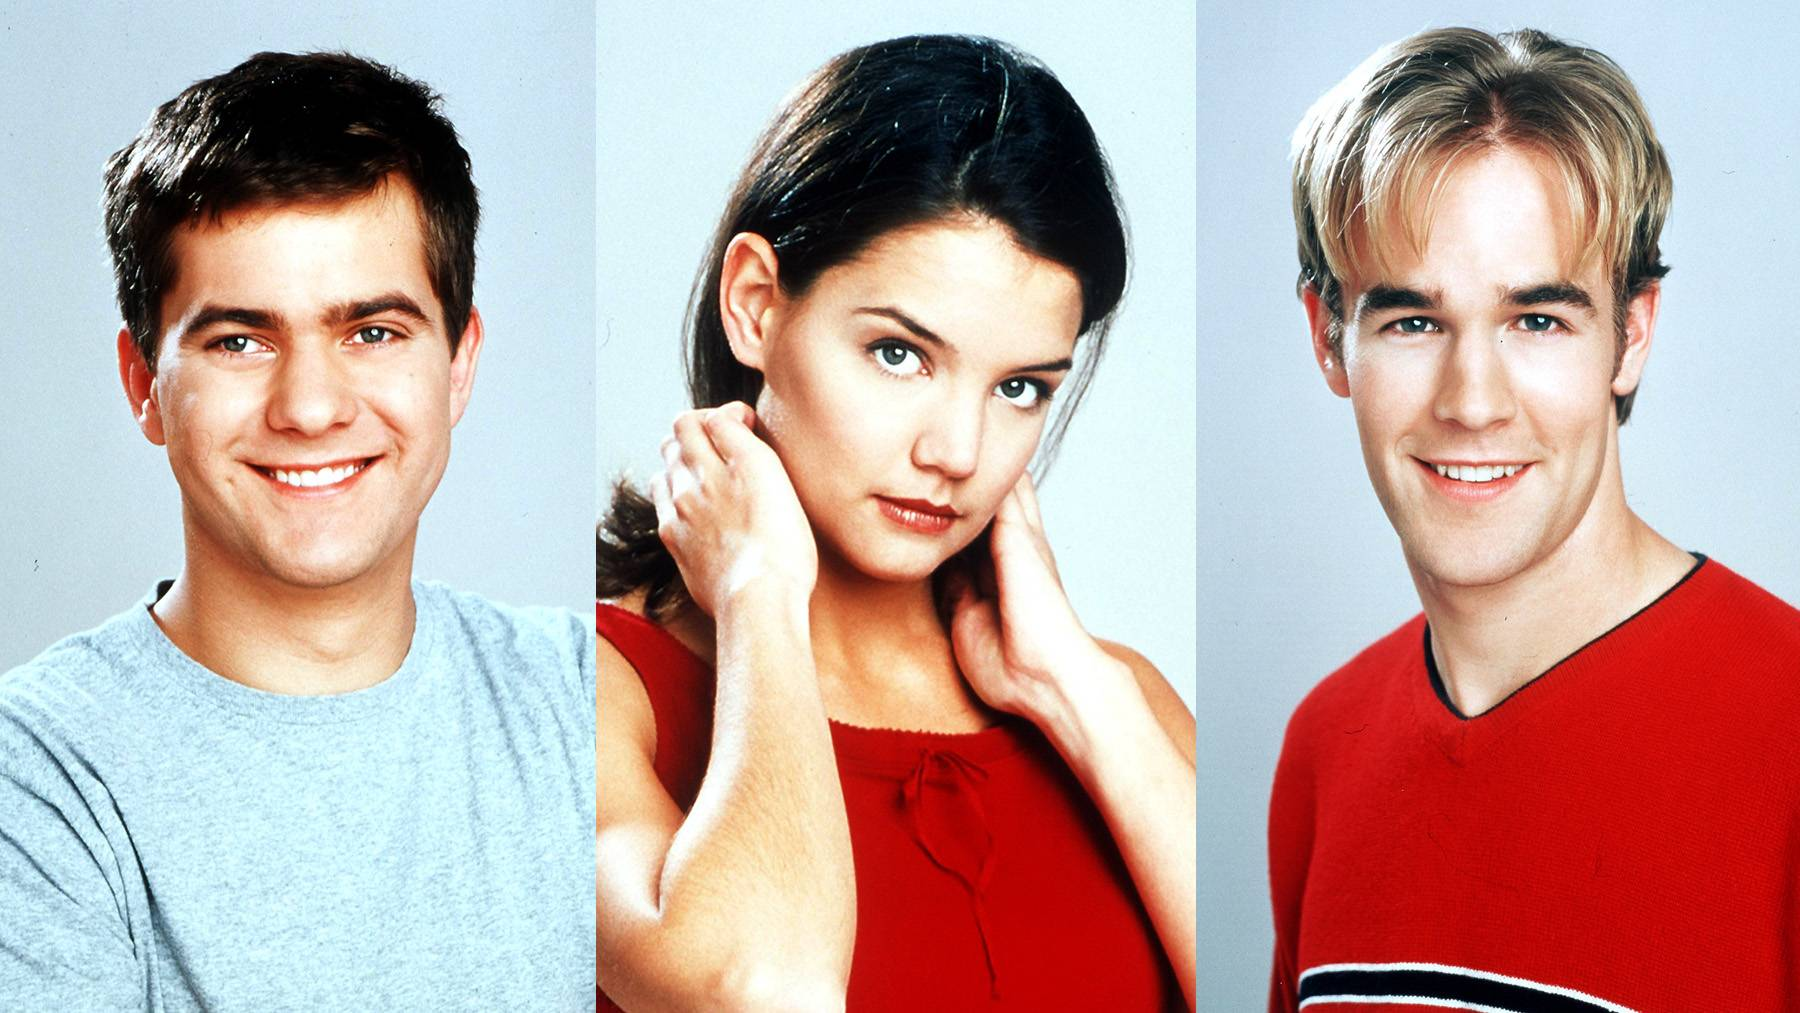 Pacey, Joey and Dawson in Dawson's Creek - Before they were known for their current achievements (Joshua Jackson was in Fringe, Katie Holmes for divorcing Tom Cruise and James Vanderbeek in Don't Trust the B--- in Apt 23), they were all tumultuous teenagers in the sordid WB drama Dawson's Creek. Holmes, who portrayed Joey, would fall in and out of love with both Dawson (Vanderbeek) and Pacey (Jackson) whenever the screenwriters felt it was convenient.   (Photos: Getty Images)